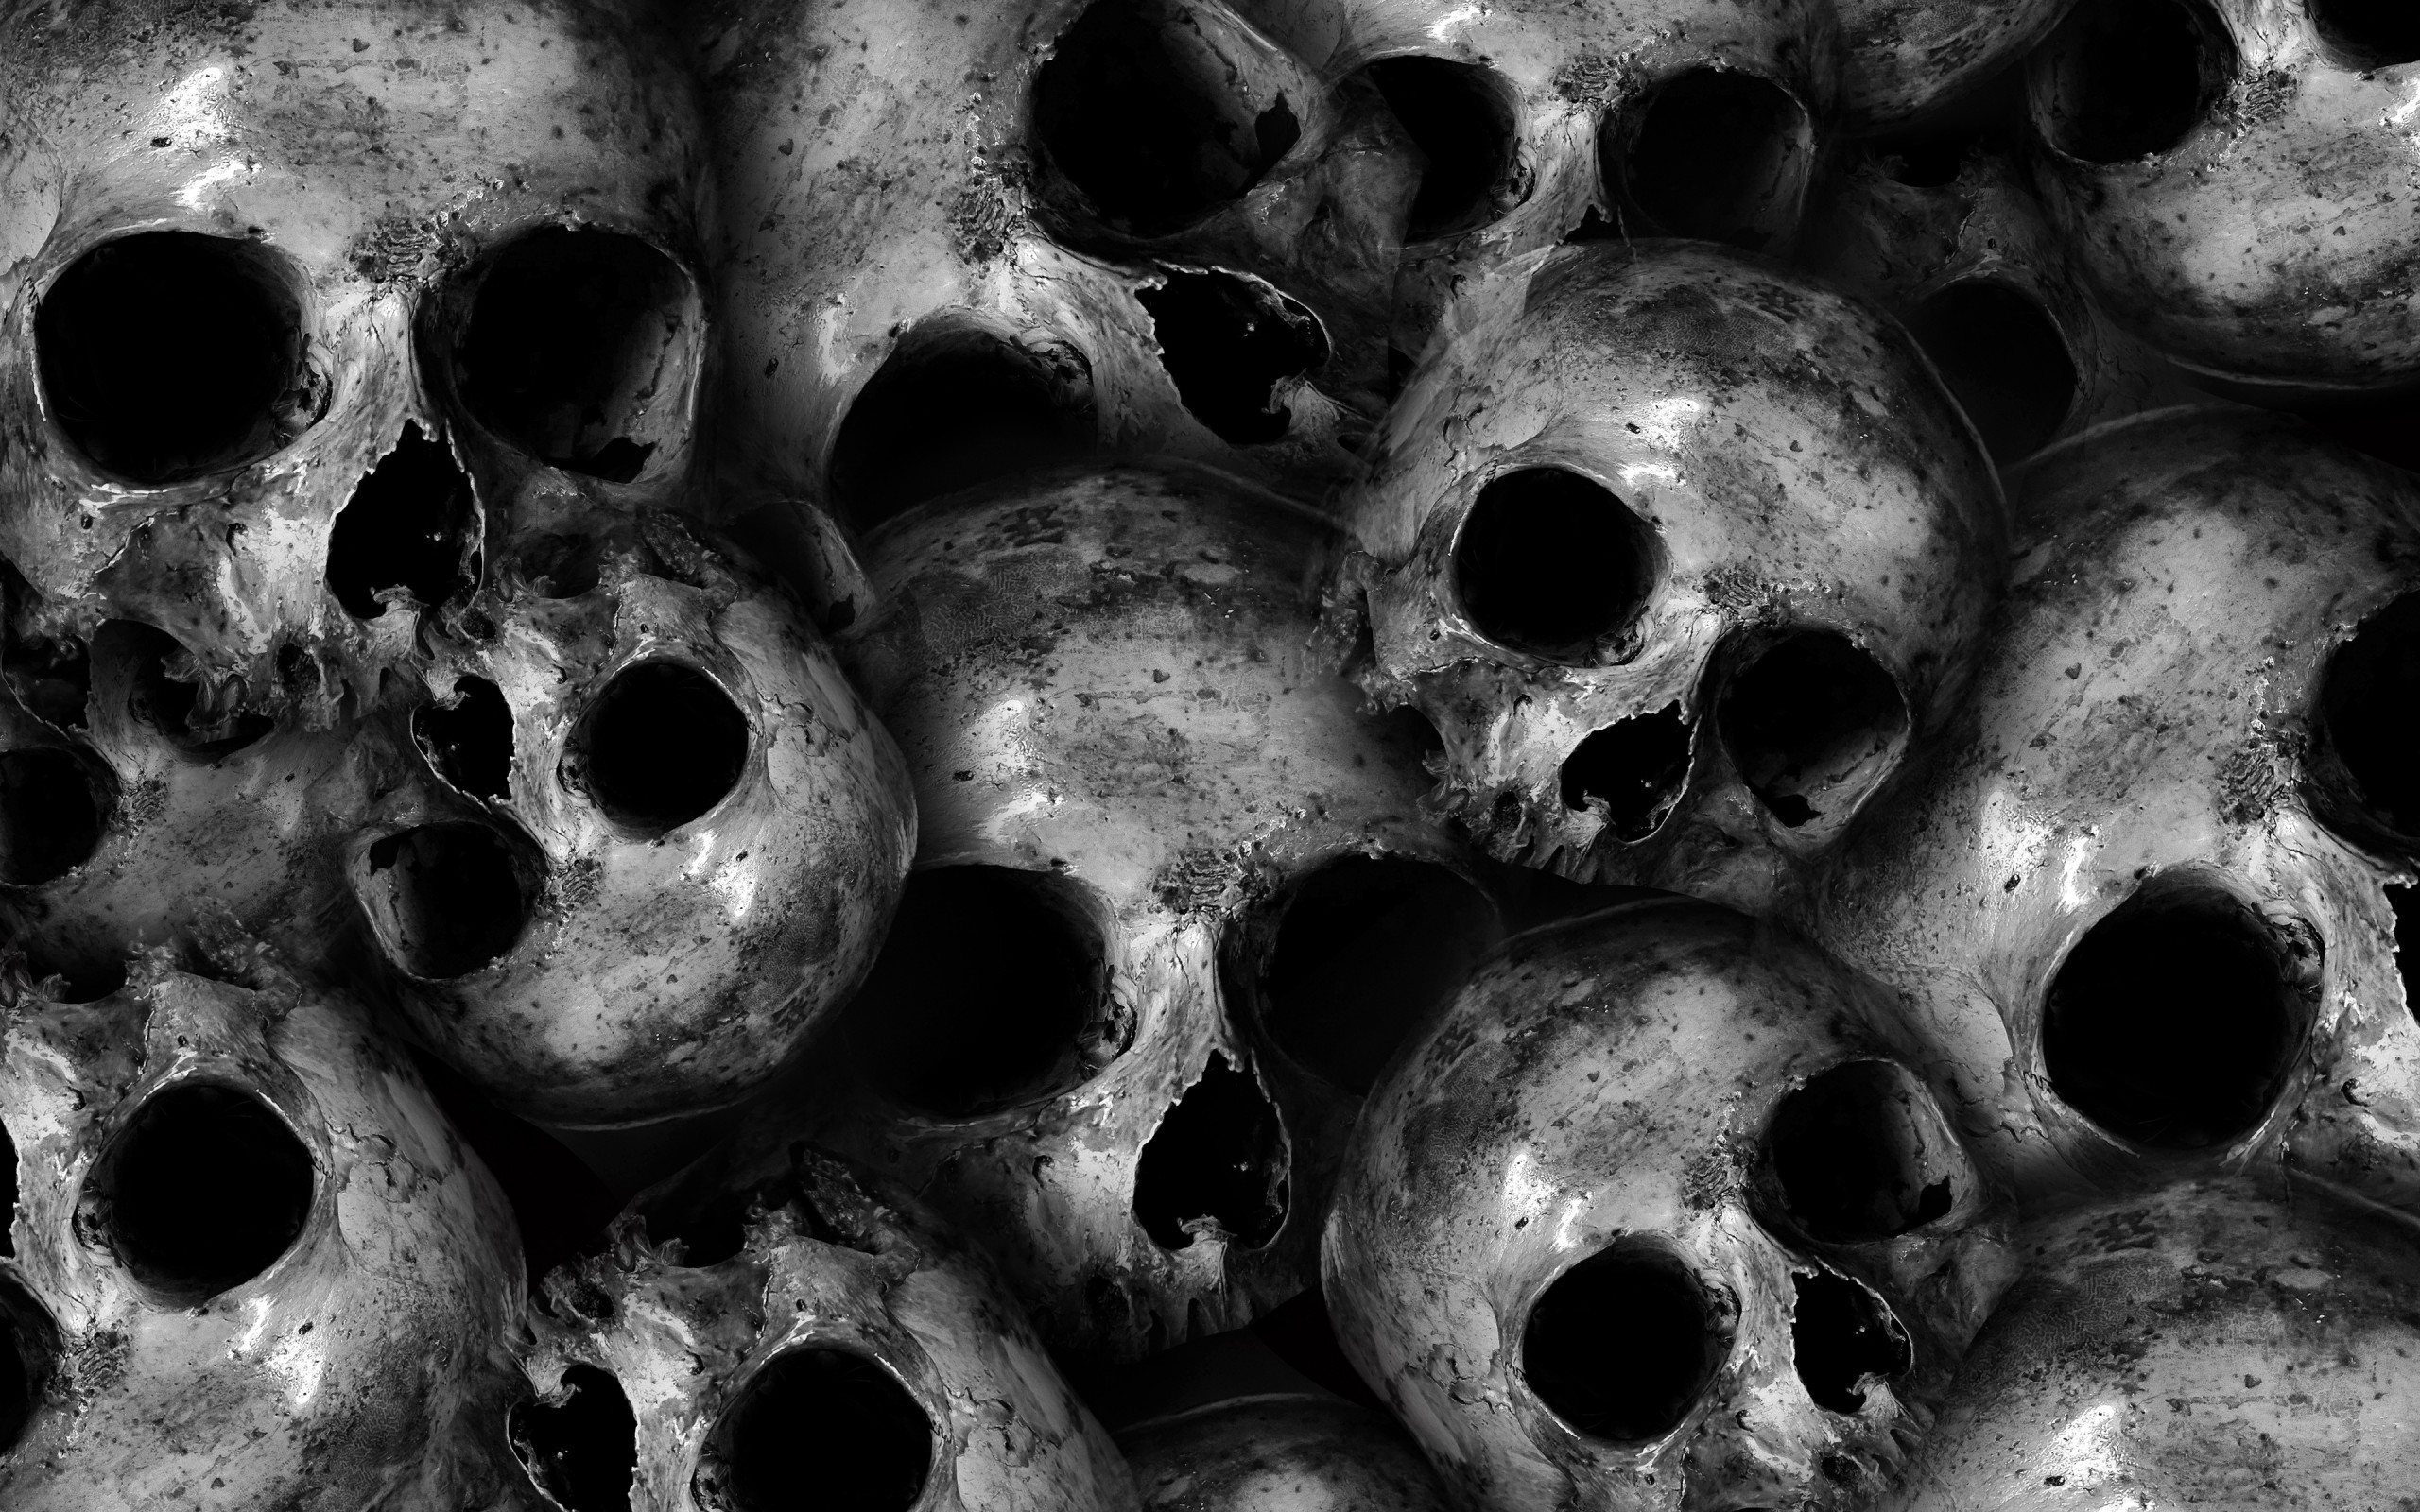 Gif As Wallpaper Iphone X Scary Skulls 4k Wallpapers Hd Wallpapers Id 23548